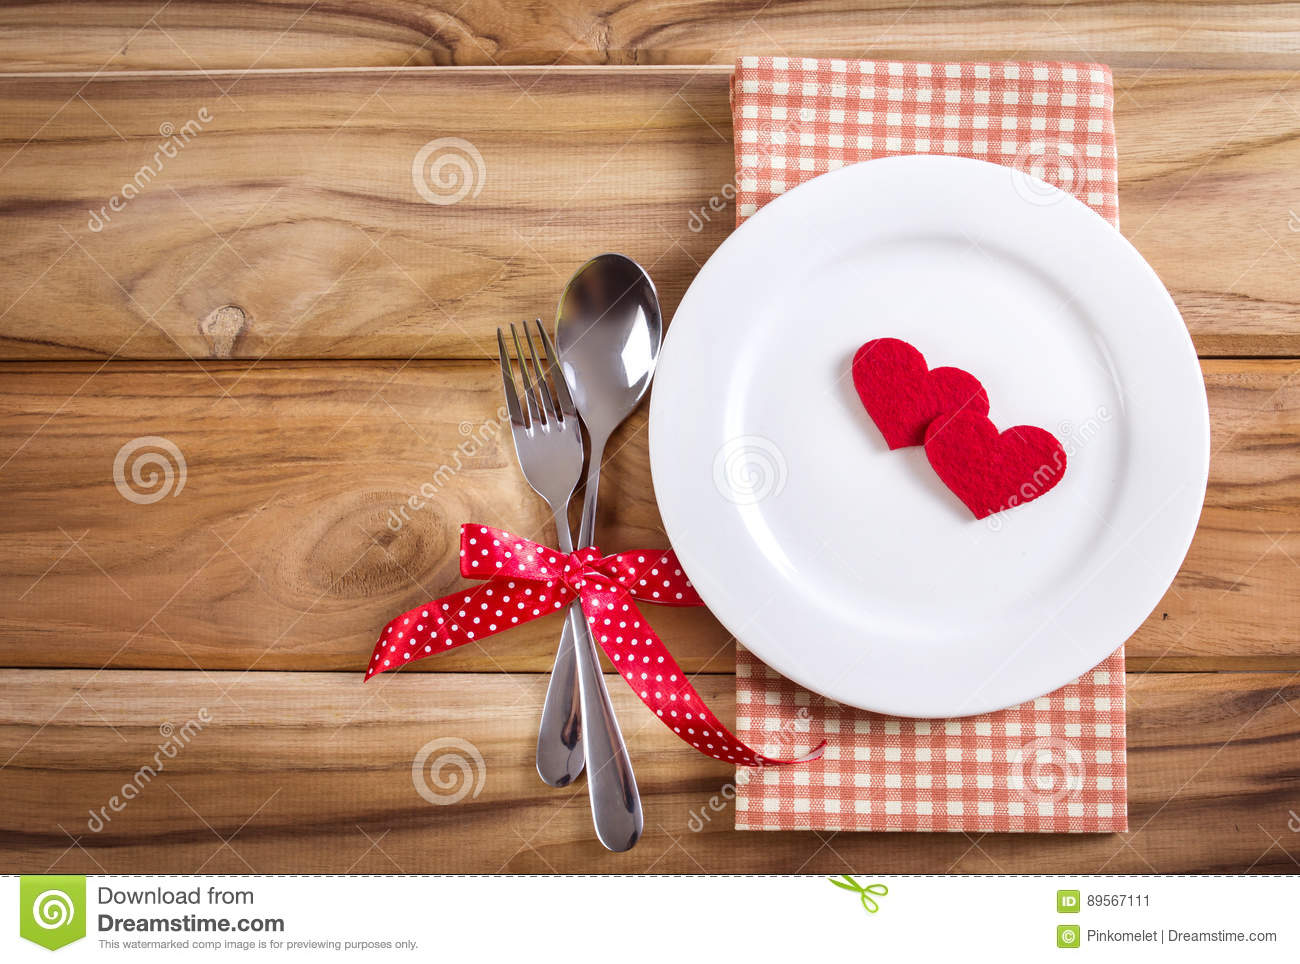 Stupendous Red Heart Shape With White Empty Plate With Fork And Spoon Download Free Architecture Designs Scobabritishbridgeorg